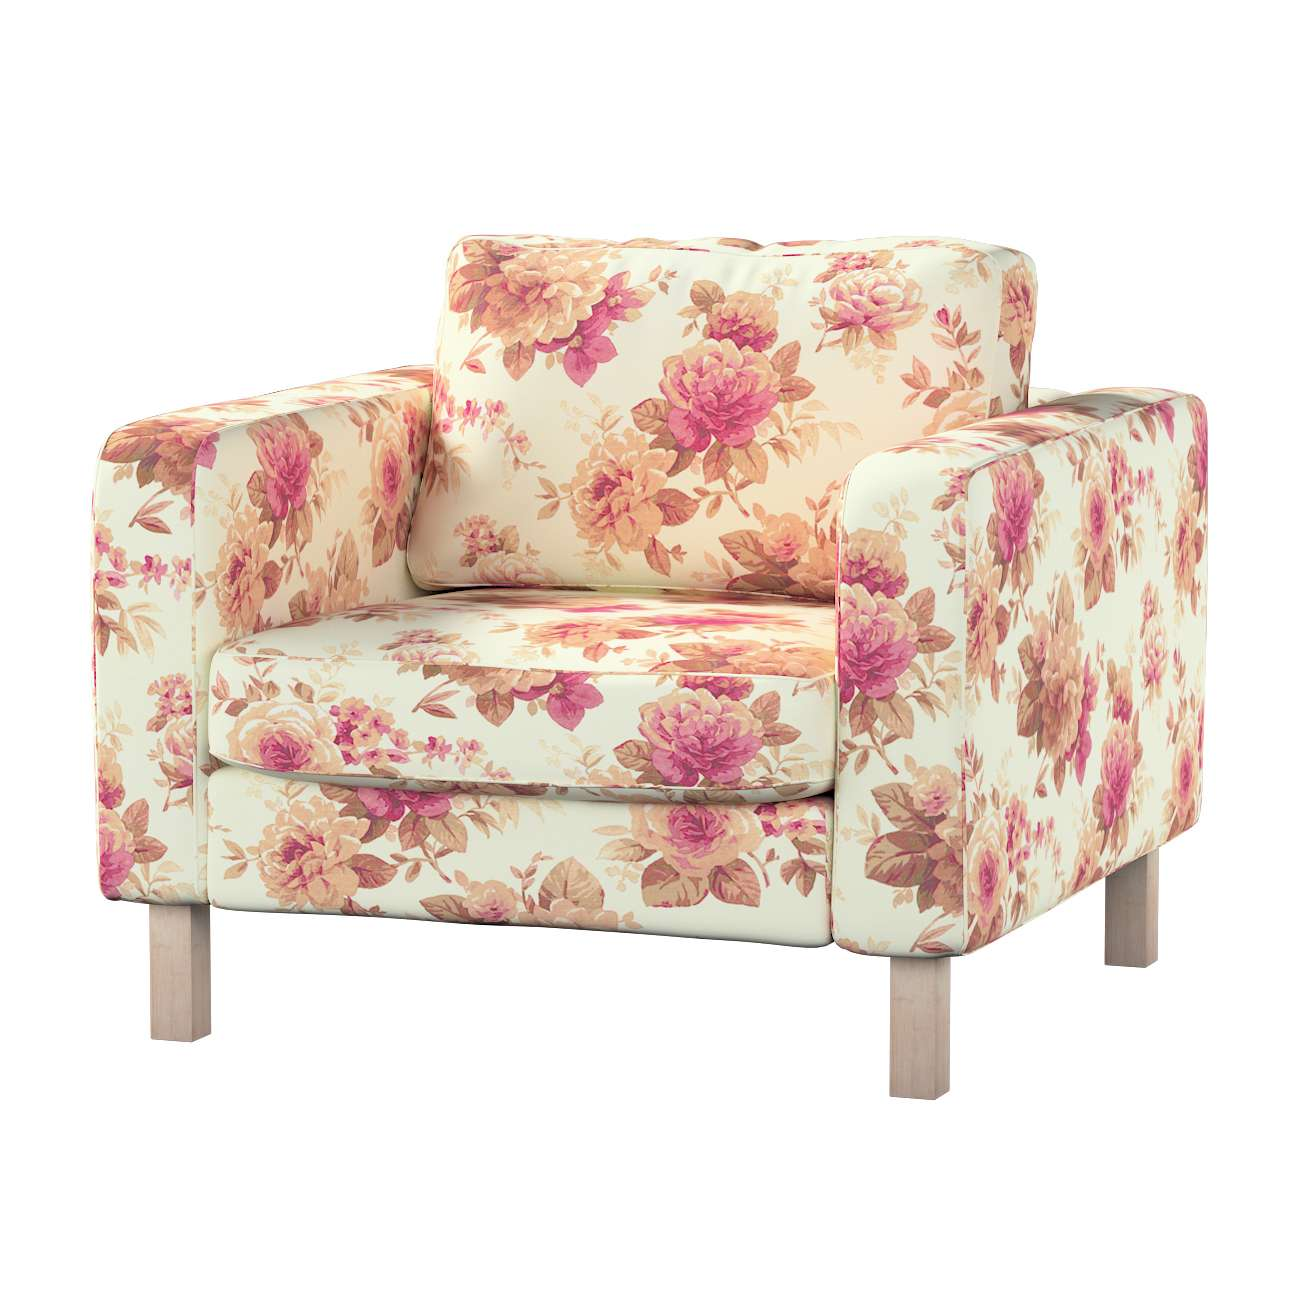 Karlstad armchair cover Karlstad armchair cover in collection Mirella, fabric: 141-06